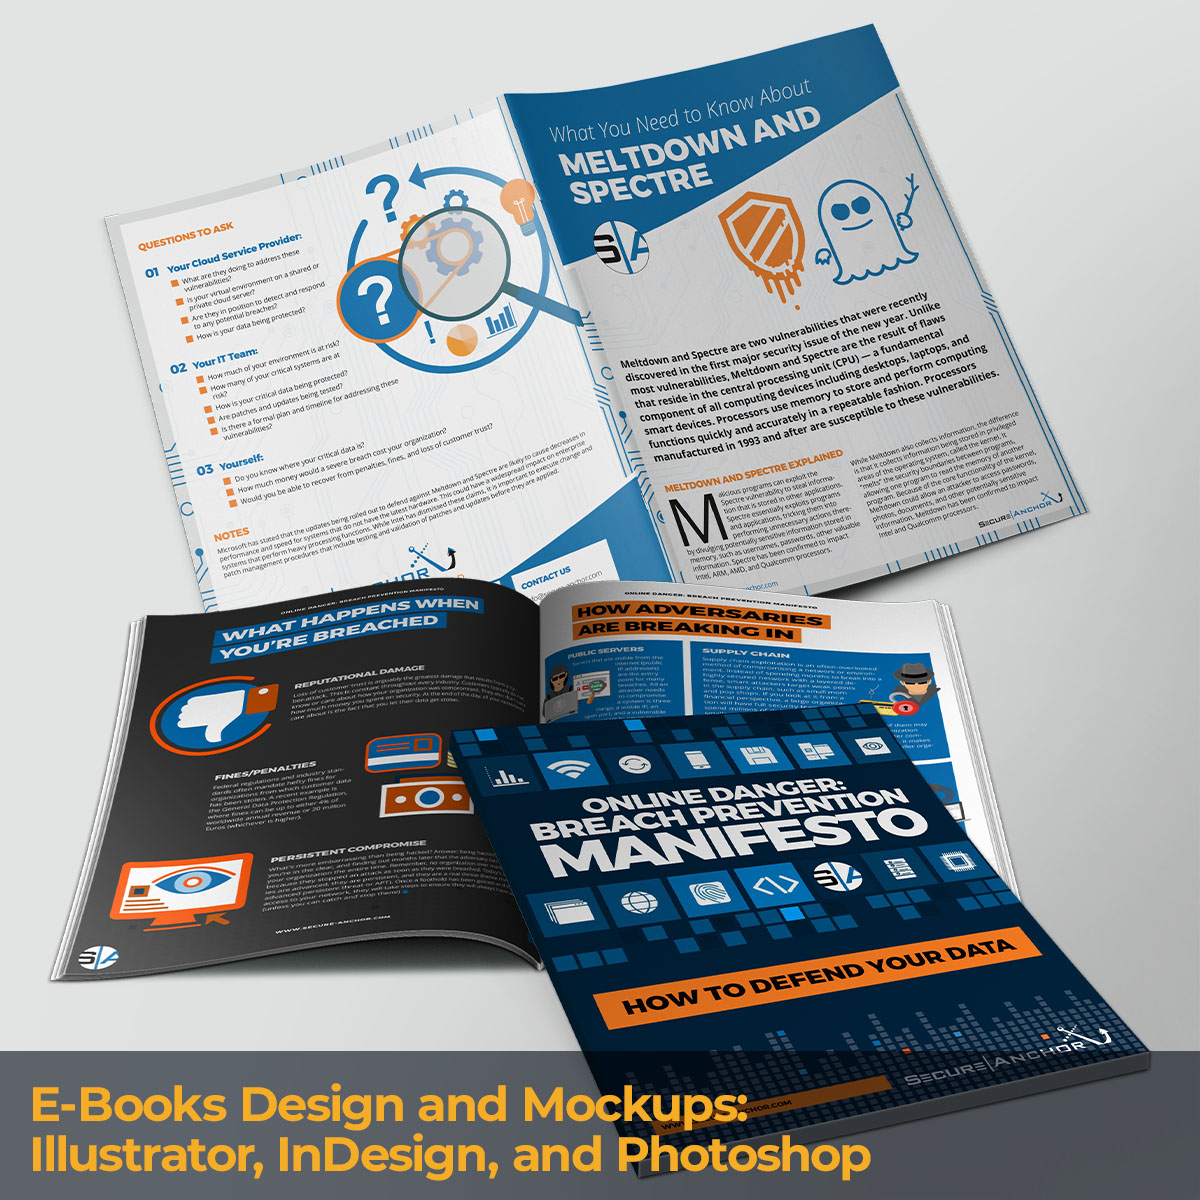 E-Books Design and Mockups